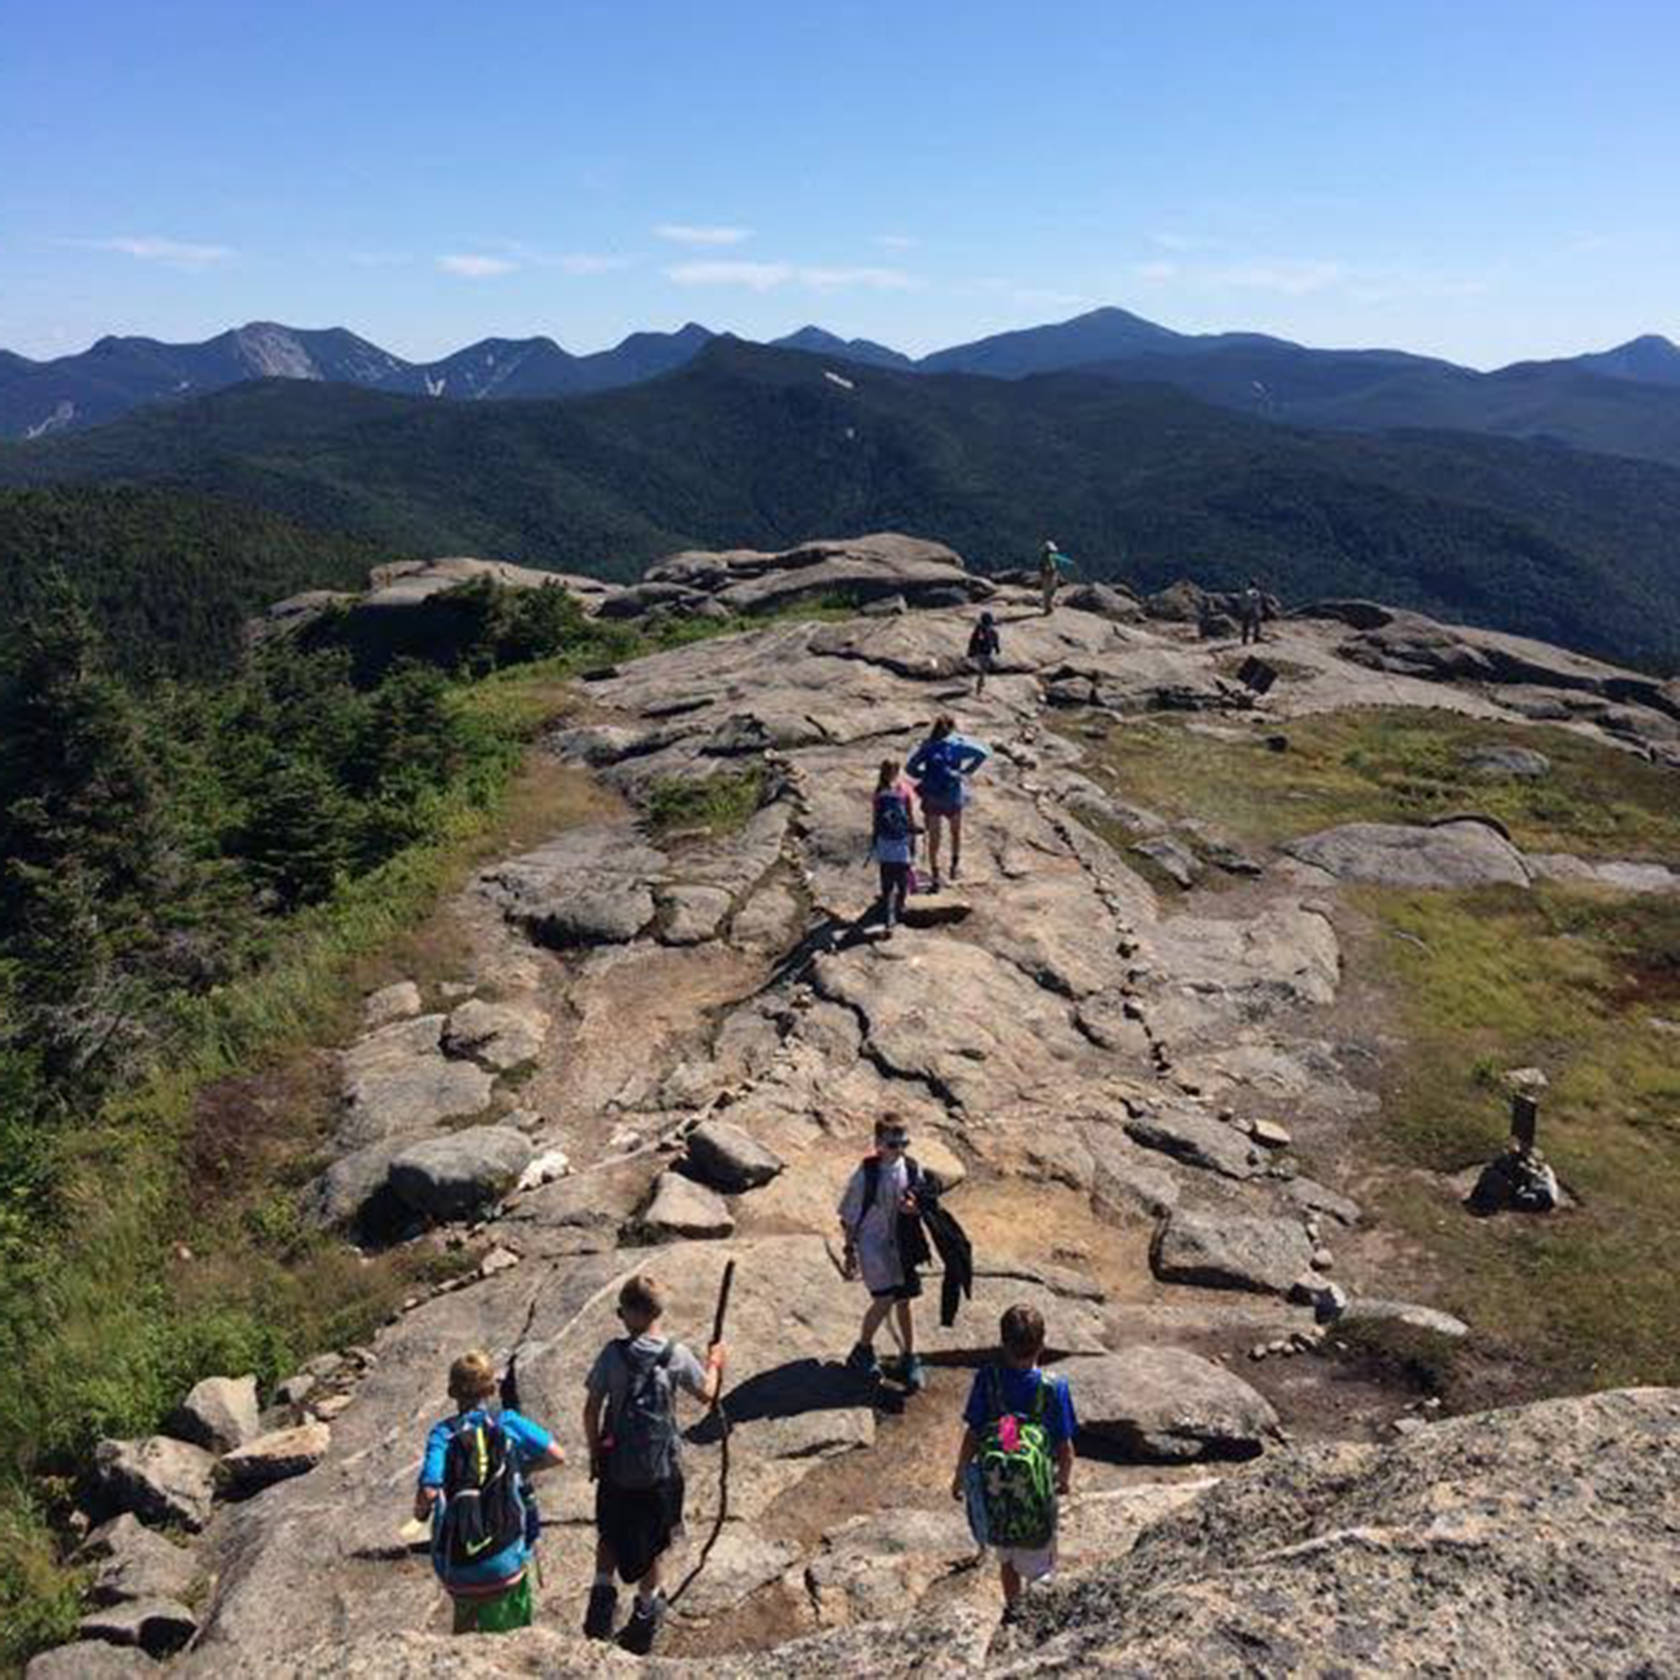 Hiking on the Adirondack Discovery trip